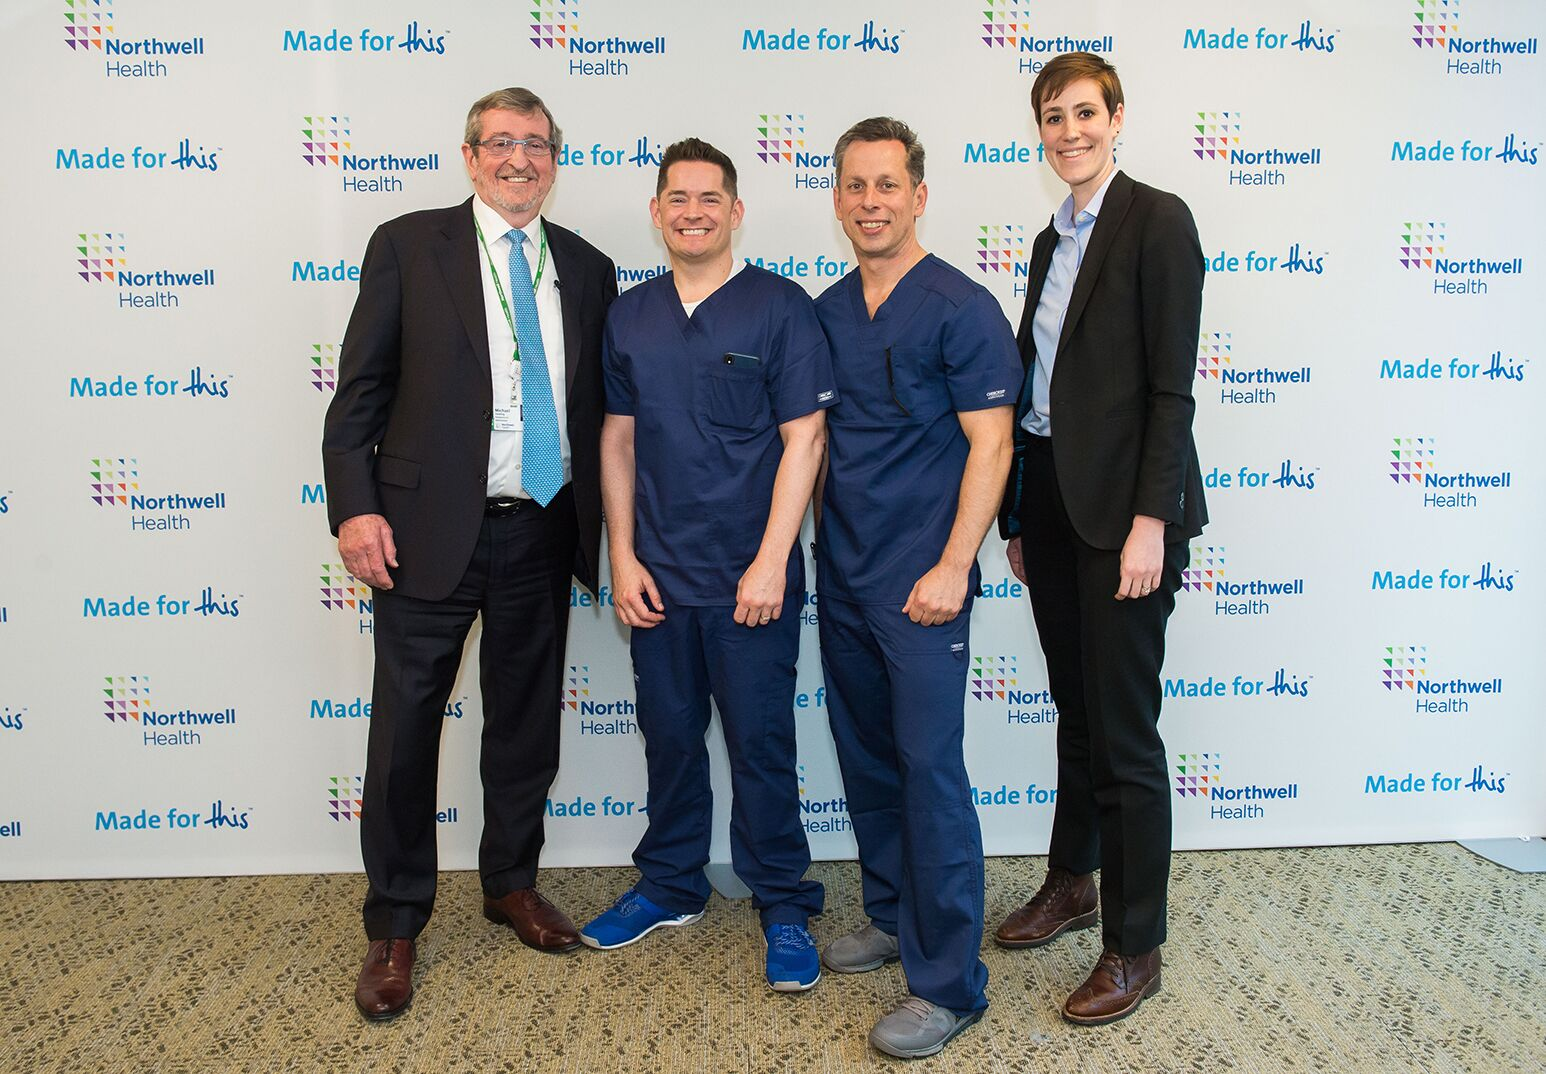 From left: Northwell Health President and CEO Michael Dowling with team leaders Drs. Eric Cruzen and John D'Angelo, whose Real-Time Actionable Data is a reporting tool that gives bedside data about a hospital's emergency department. Far right: team member Sarah Healey Herod.